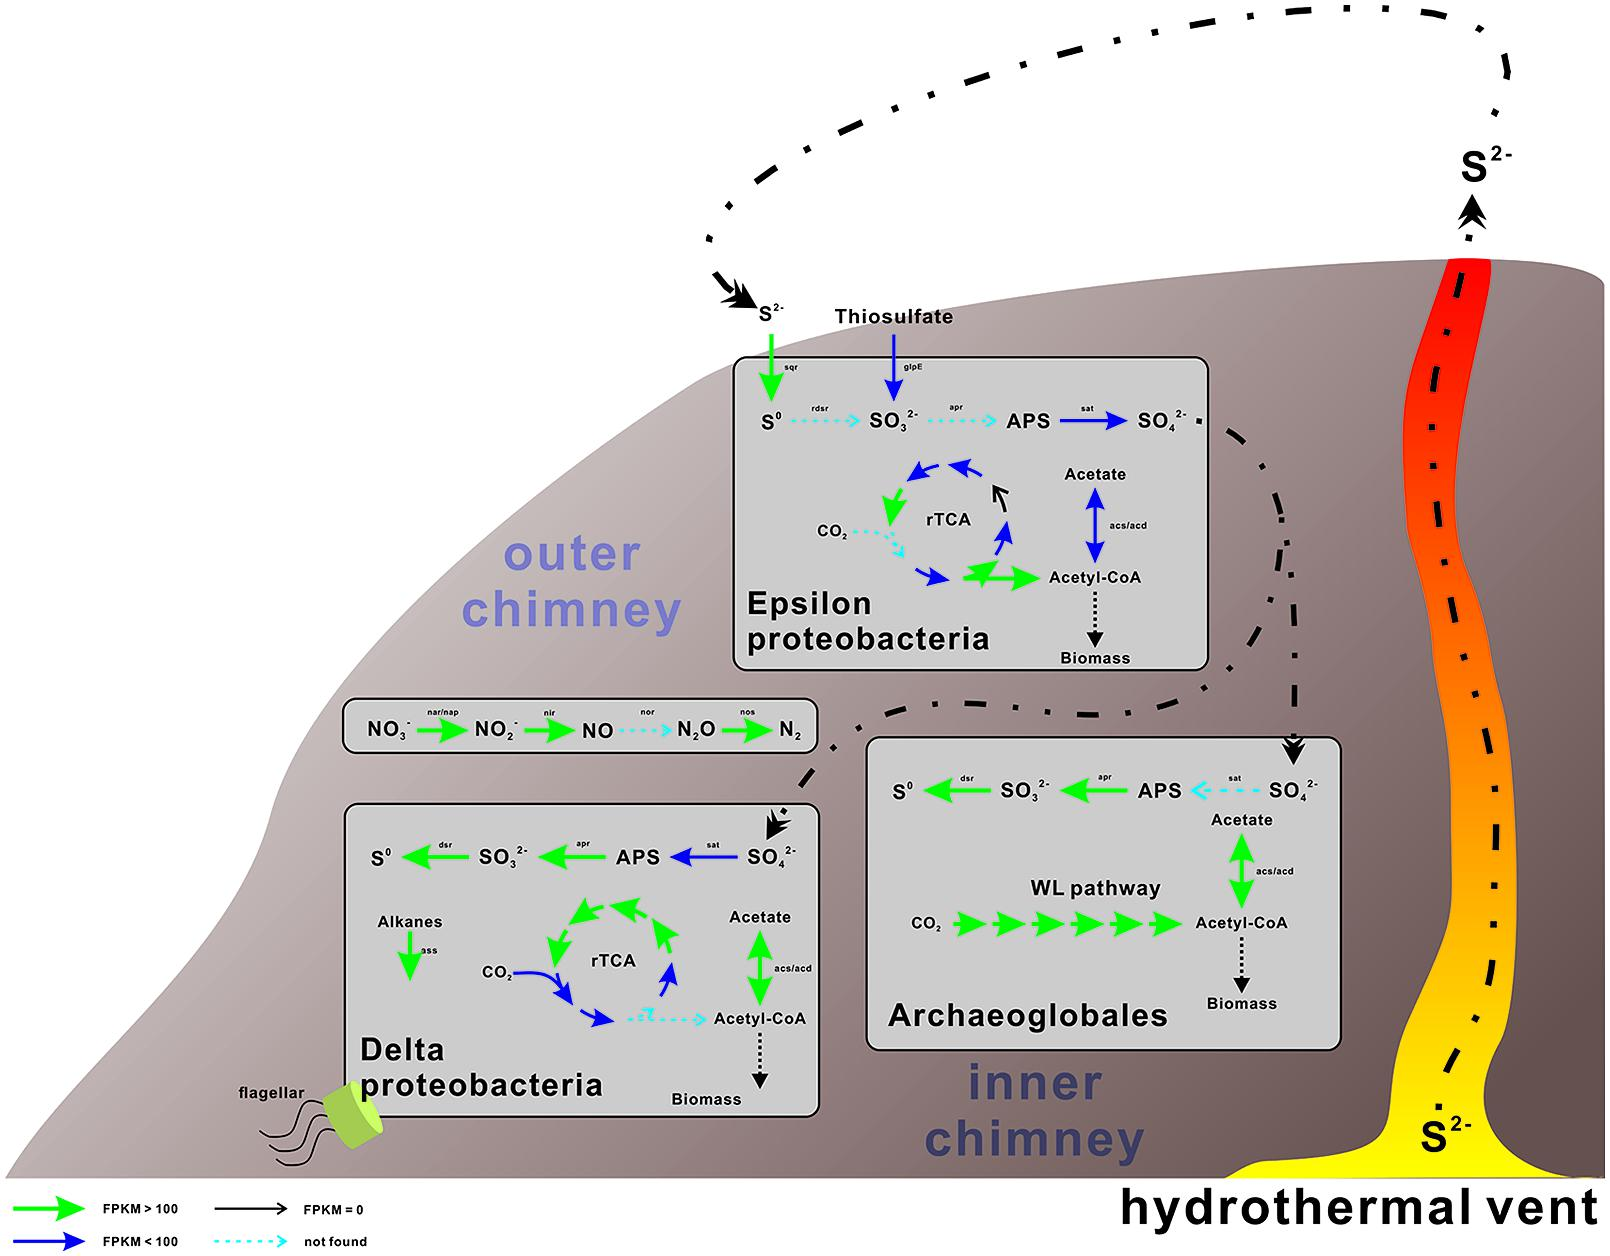 organism hydrothermal vent engages chemosynthesis Hydrothermal vent hydrothermal vents and chemosynthesis: organisms in hydrothermal vents must acquire energy in.